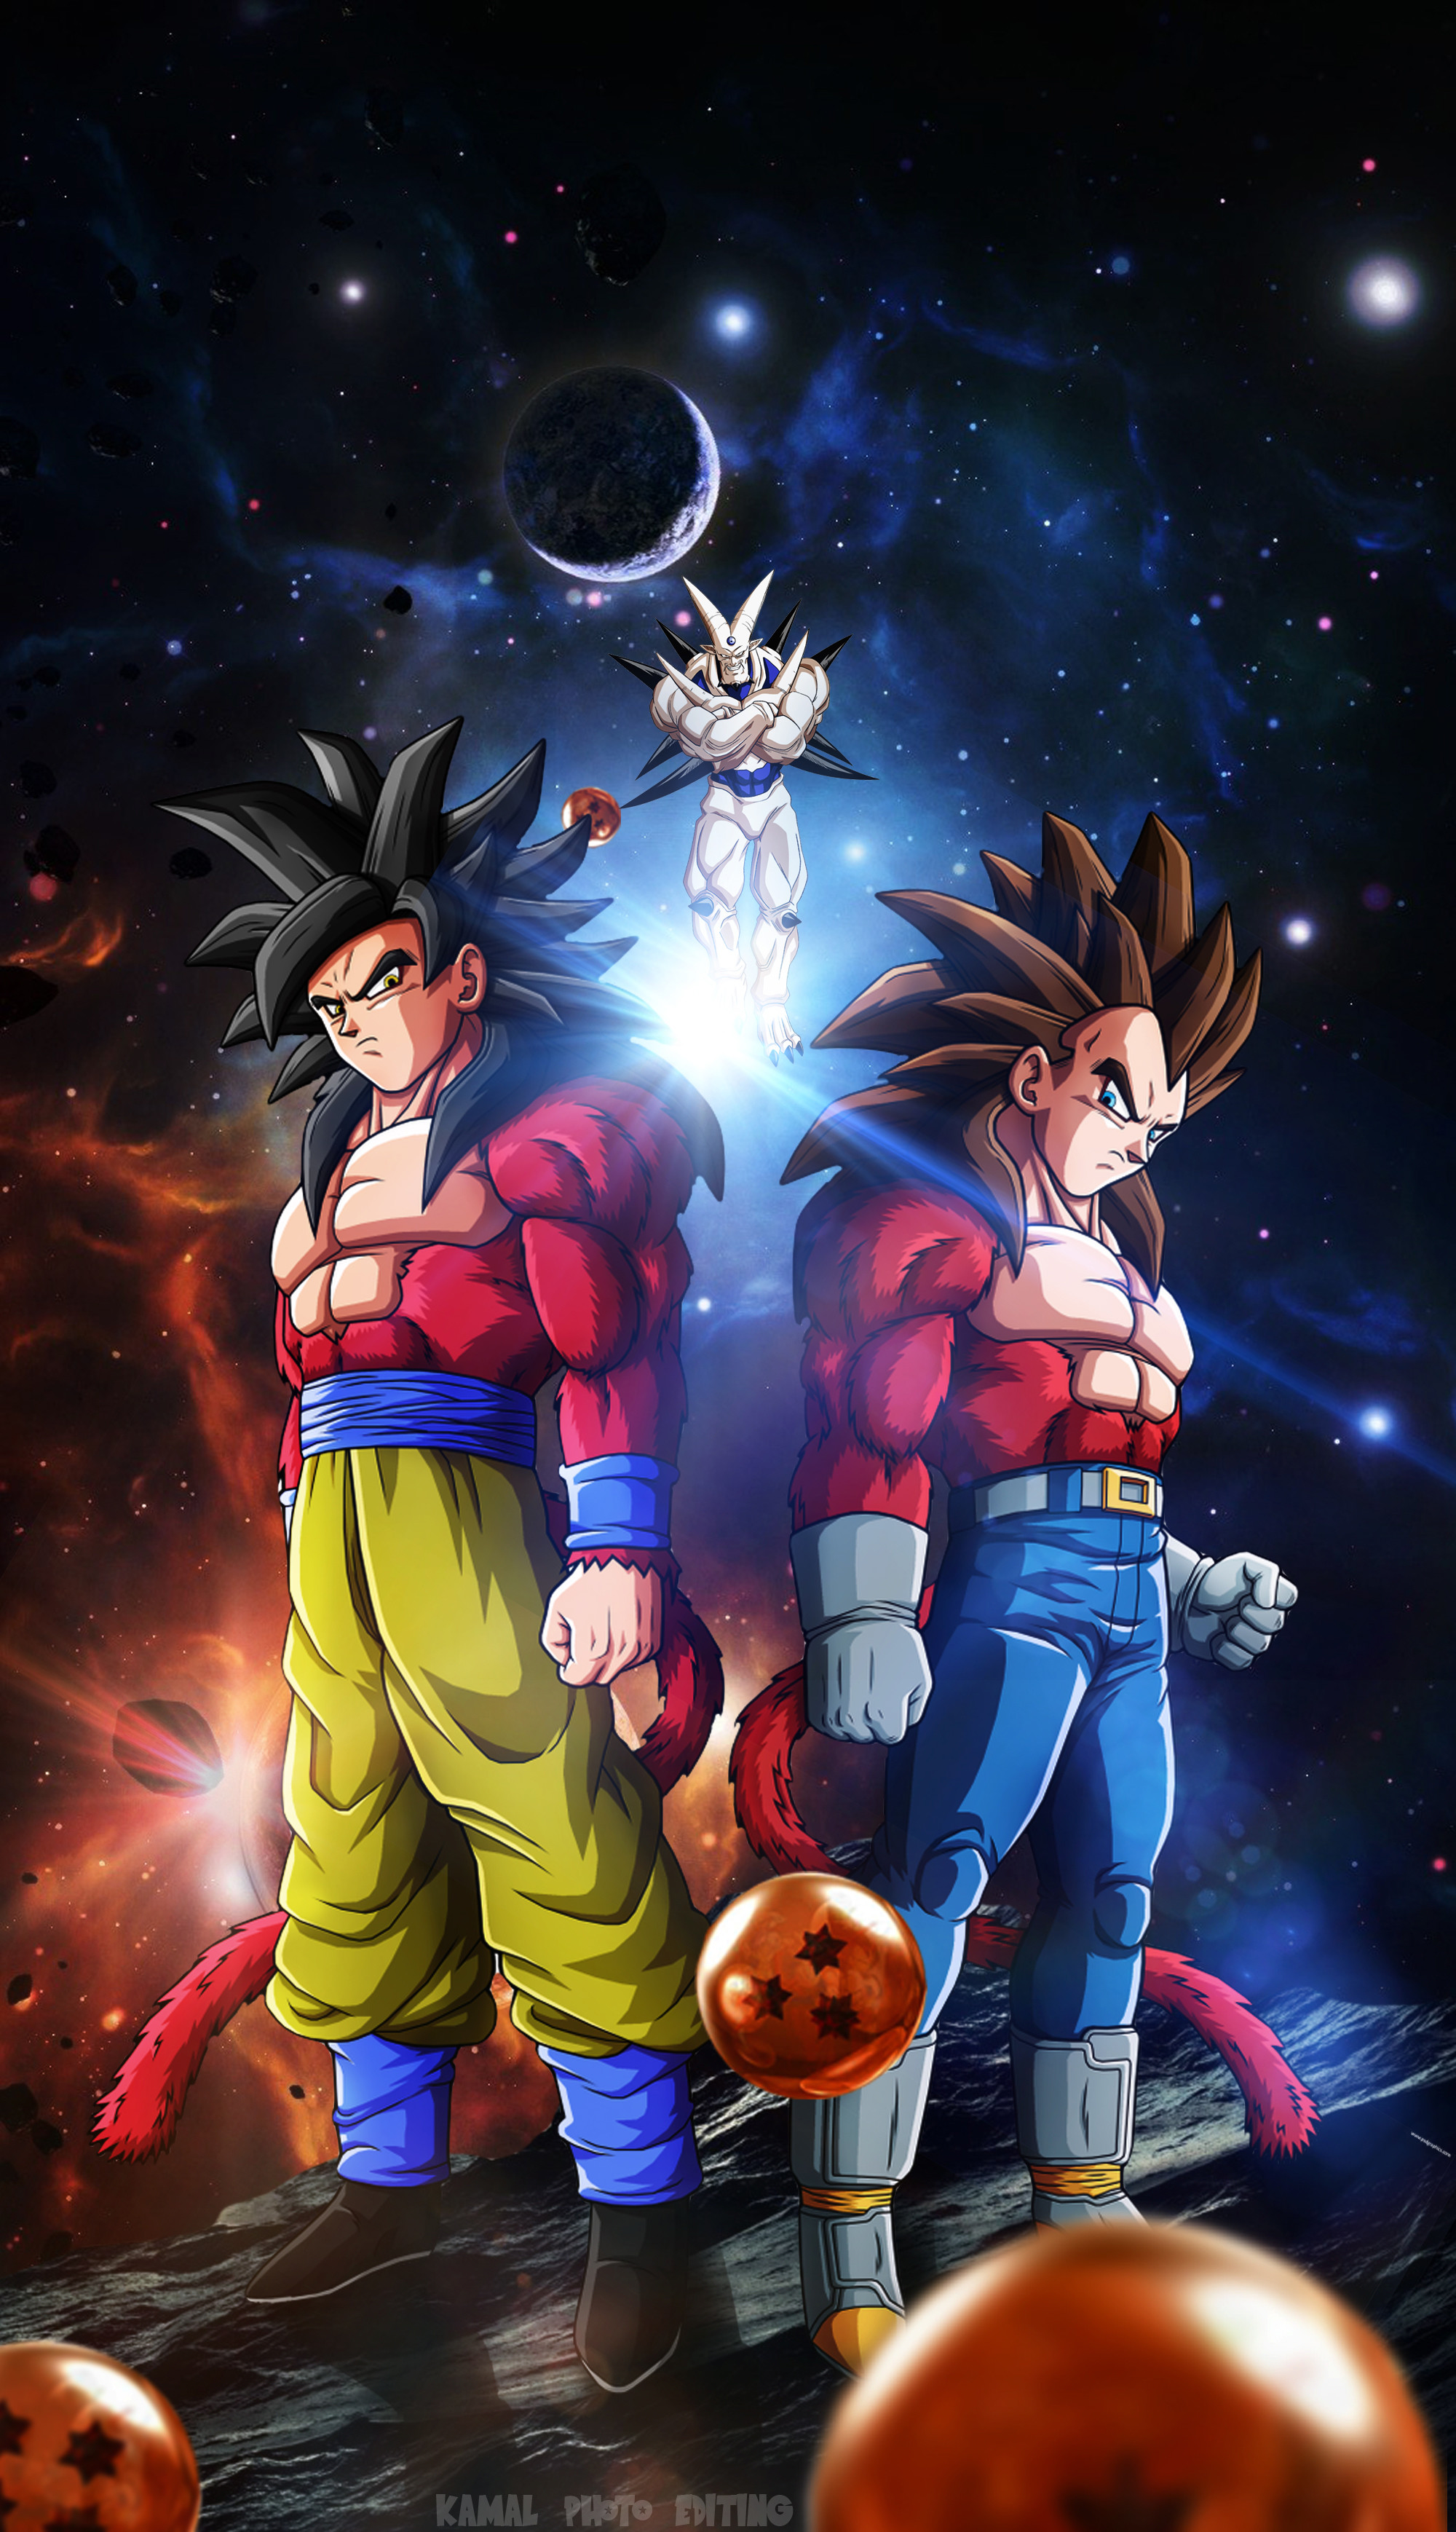 Goku phone wallpaper 63 images - Vegeta wallpapers for mobile ...